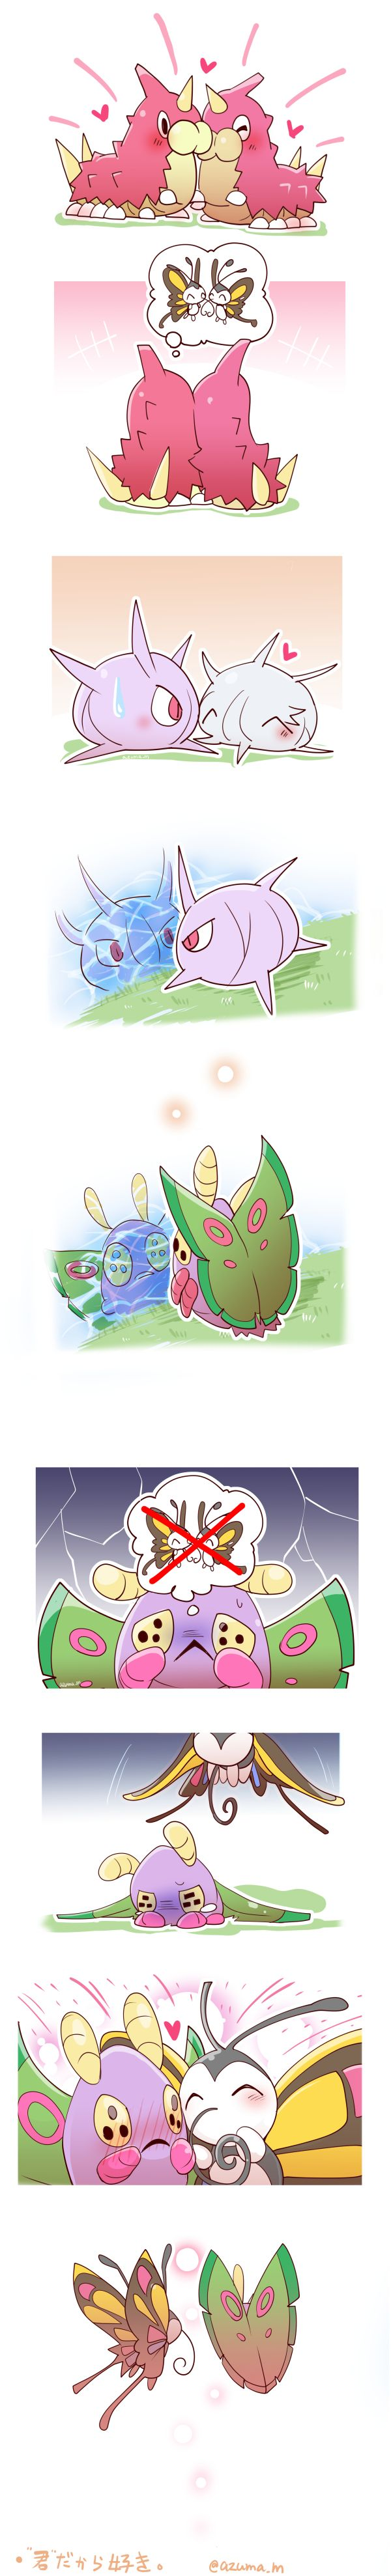 Beautifly & Dustox comic